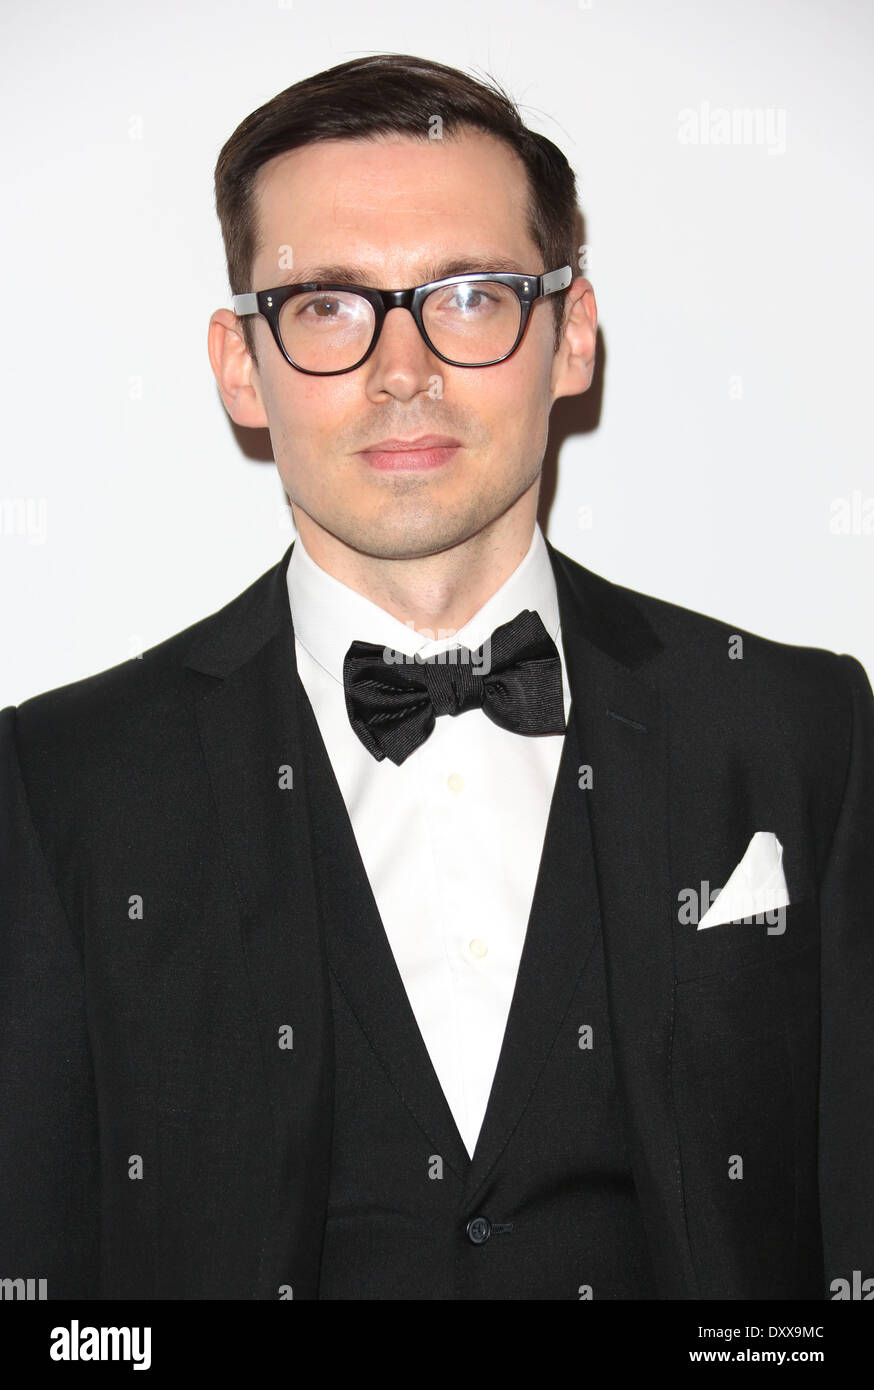 Erdem Moralioglu The British Fashion Awards 2012 held at The Savoy - arrivals London England - 27.11.12 Featuring: Erdem Moralioglu Where: London United Kingdom When: 27 Nov 2012 - Stock Image